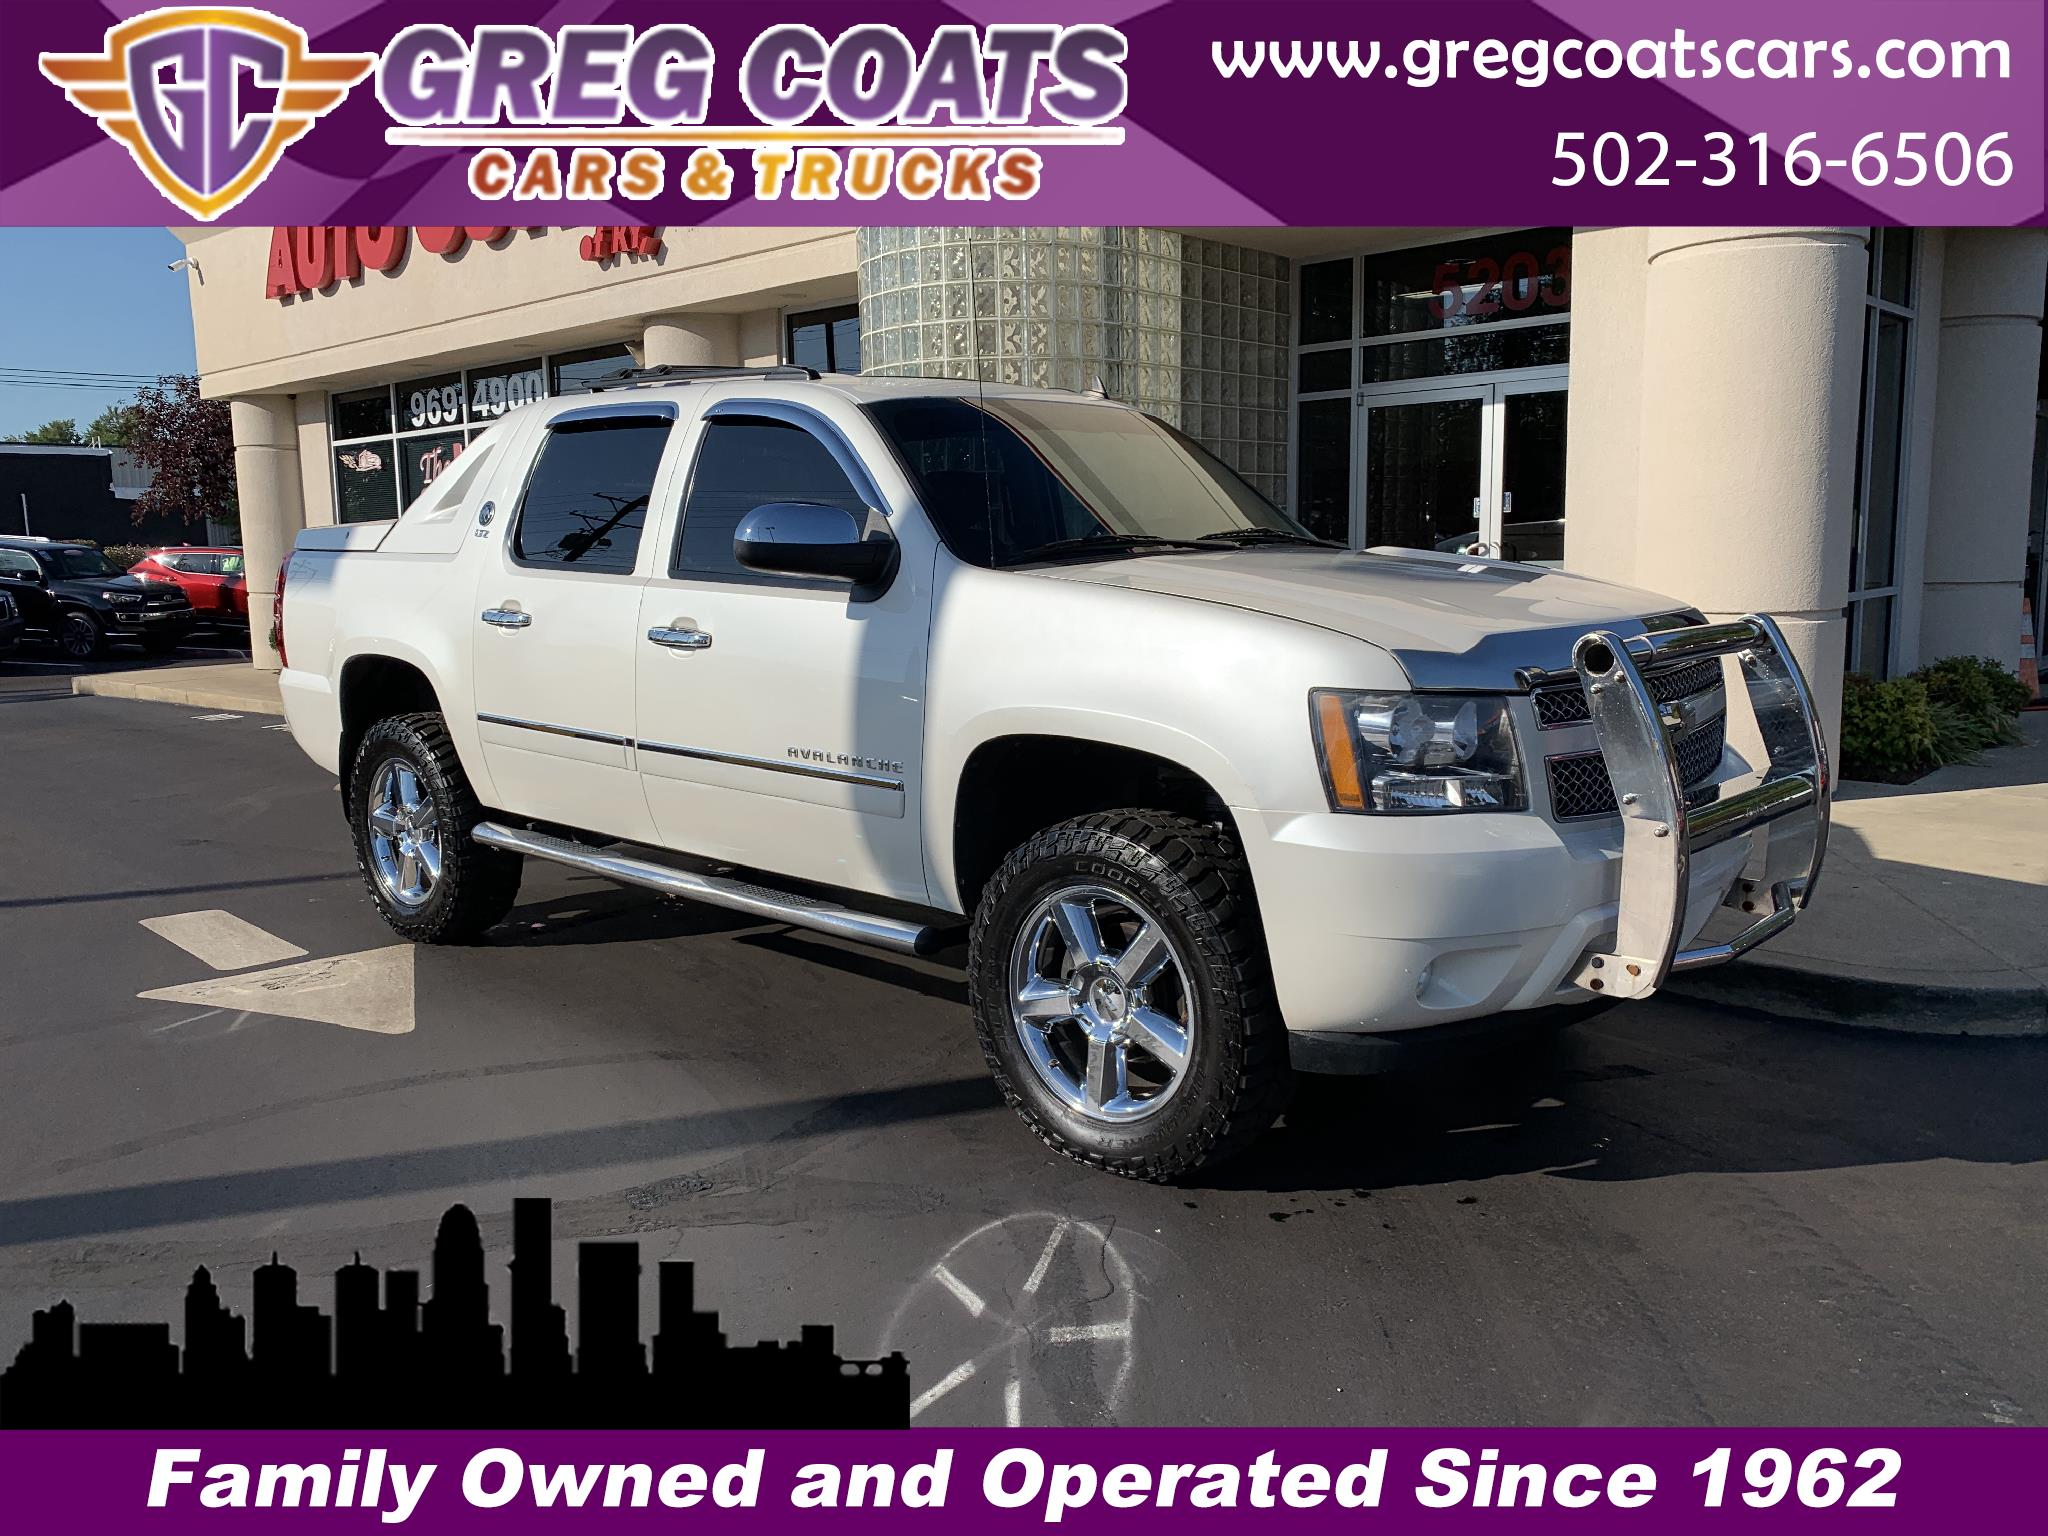 2011 Chevrolet Avalanche LTZ BLACK DIAMOND 4X4